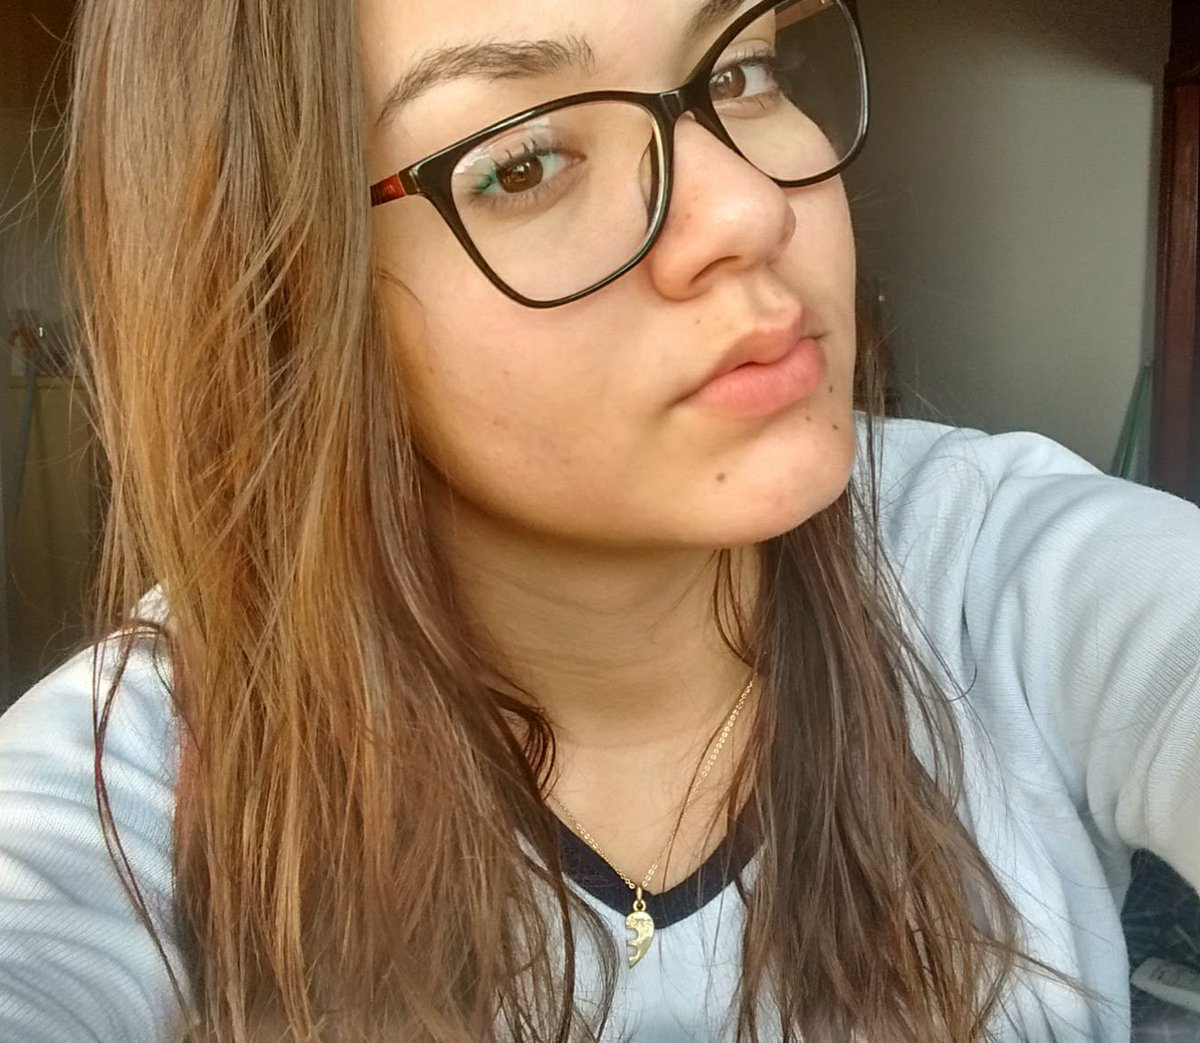 RT @purposegirI: My name is Liv and i'm 16 years Old. Brazil misses You 🇧🇷 Come back soon @Nashgrier  #SelfieForNash https://t.co/bs43RjwtwT